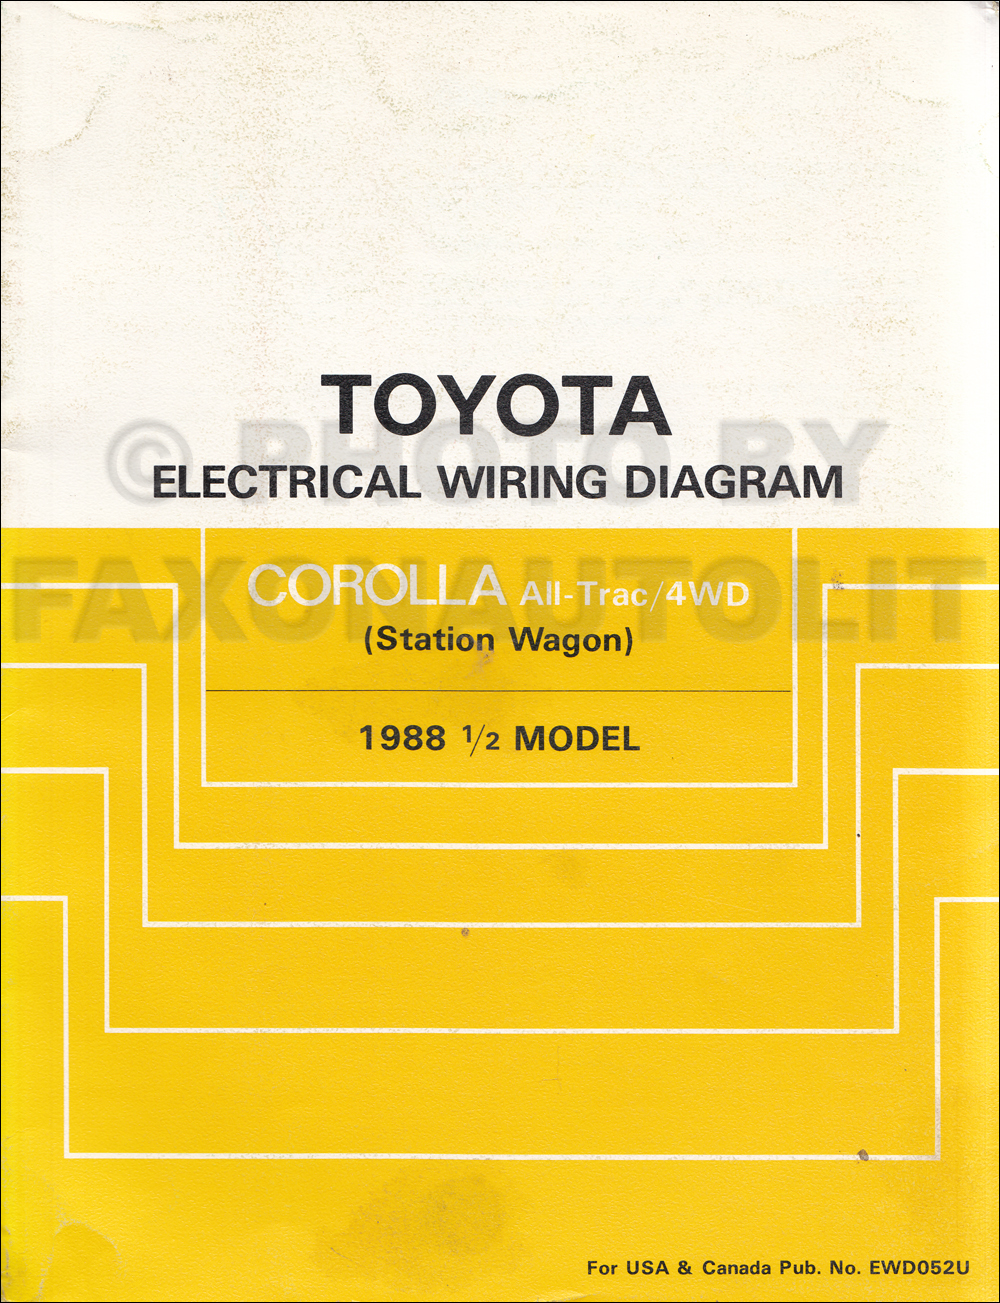 1988 Toyota Corolla All-Trac/4WD Station Wagon Wiring Diagram Manual ...